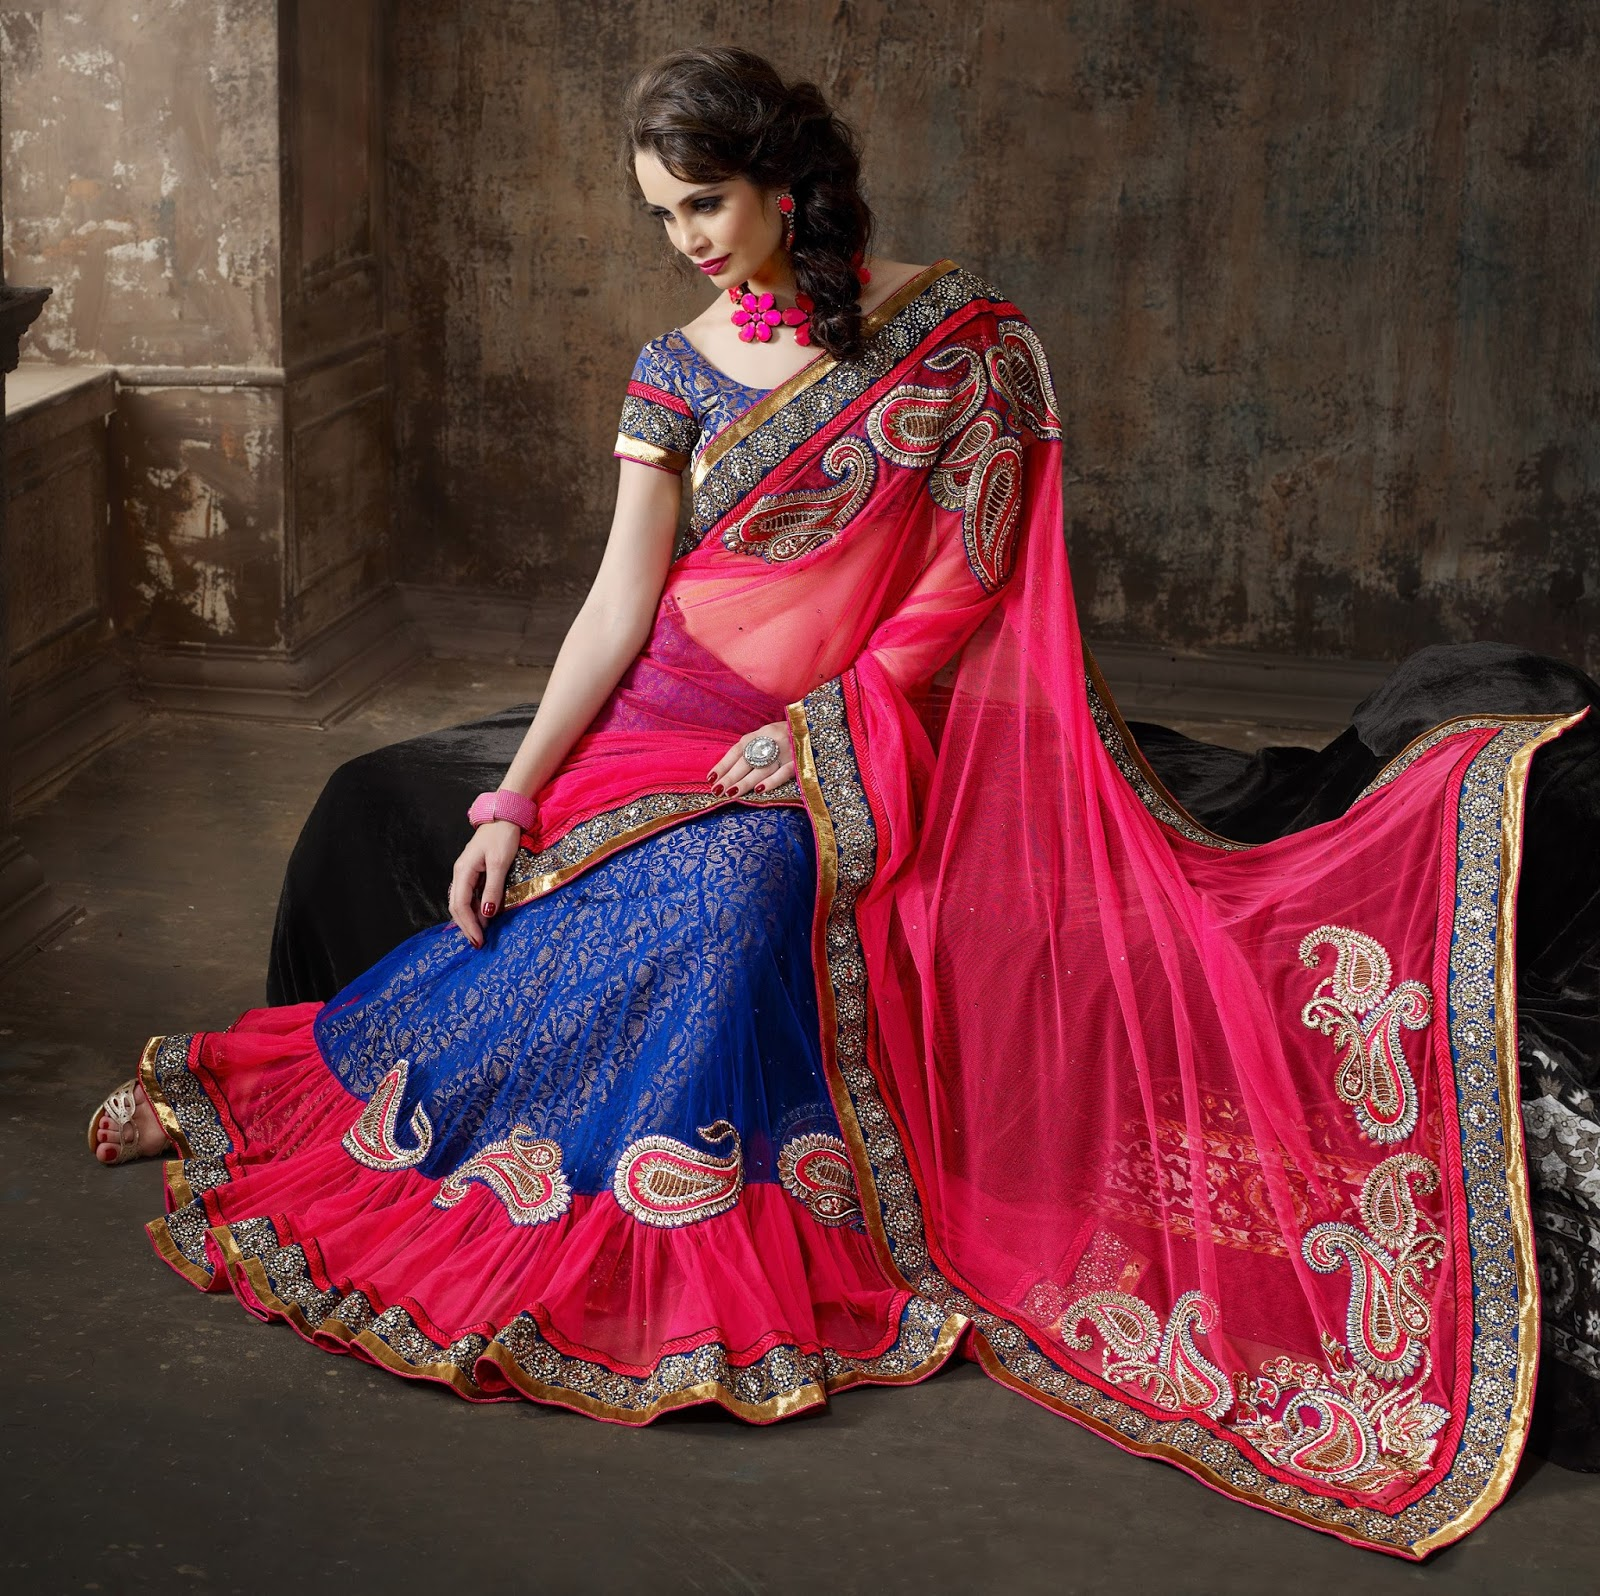 260b2a852779f0 Buy your favorite lehenga saree online today and get ready to see your best  friend tie the knot because your dream to look gorgeous waits just on the  other ...